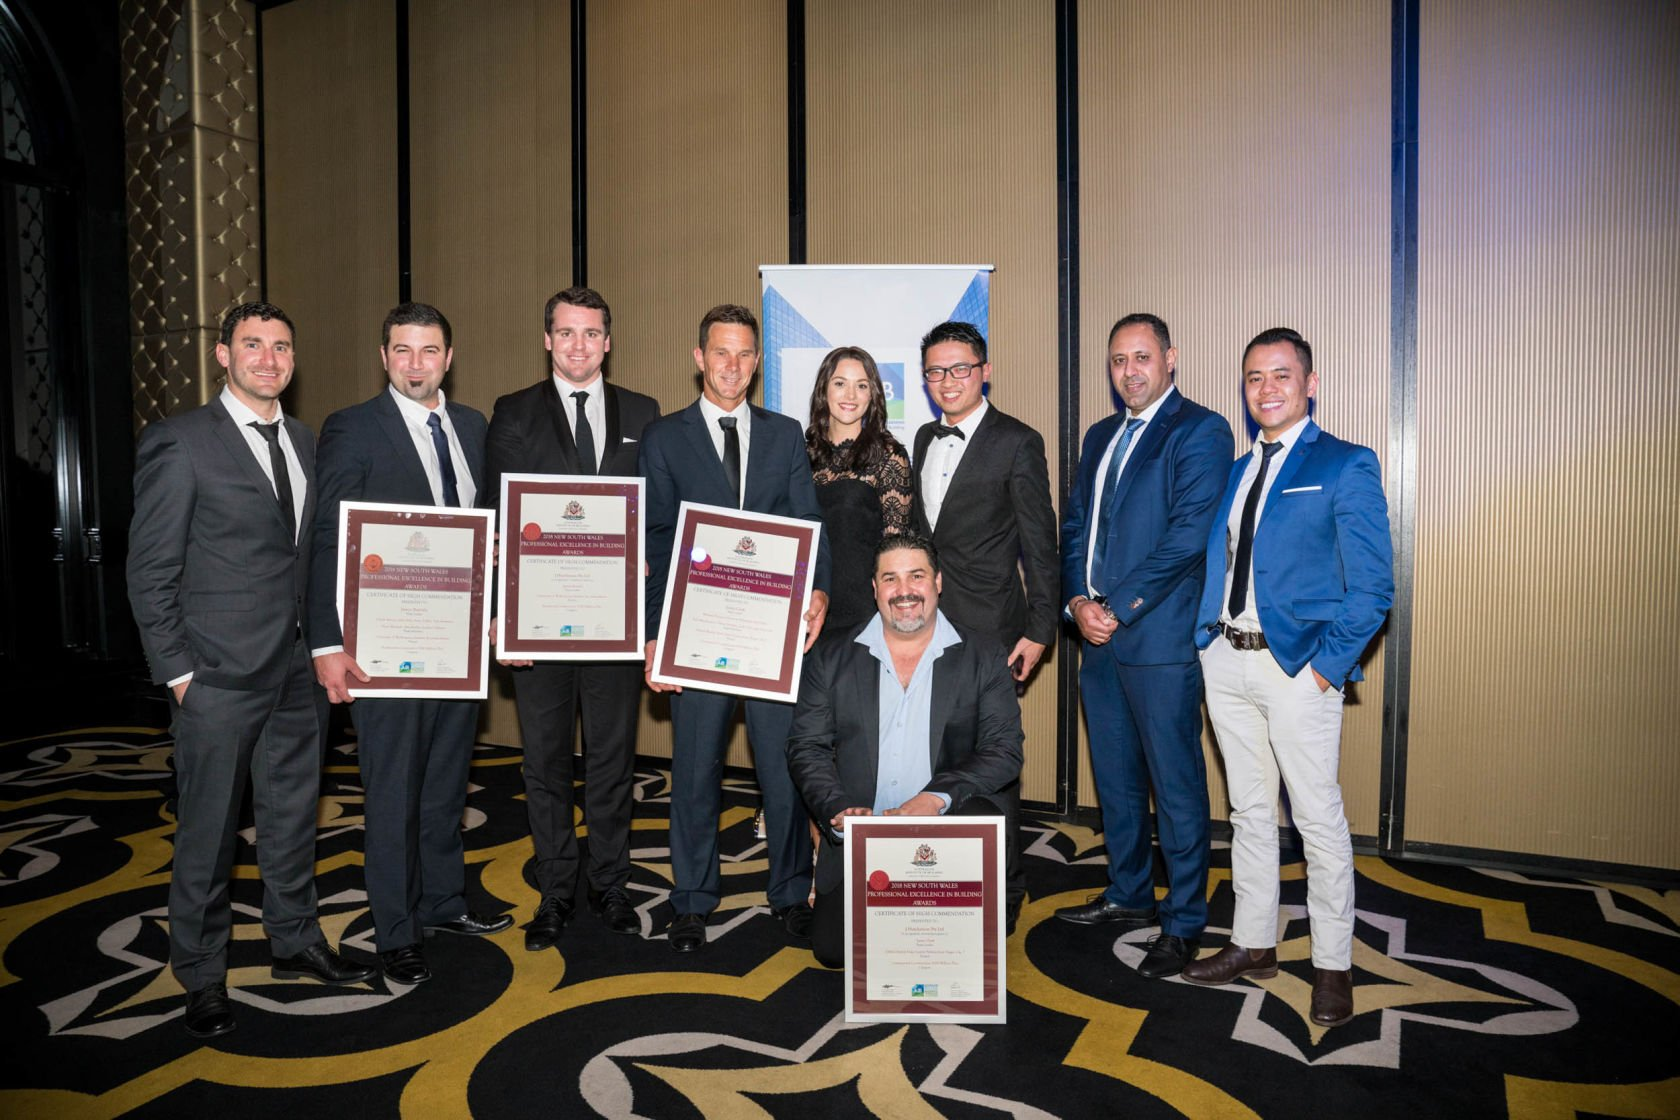 New South Wales Teams for High Commendations for Residential and Commercial Construction Categories $100M+ for UoW Student Villages and Global Switch Data Centre